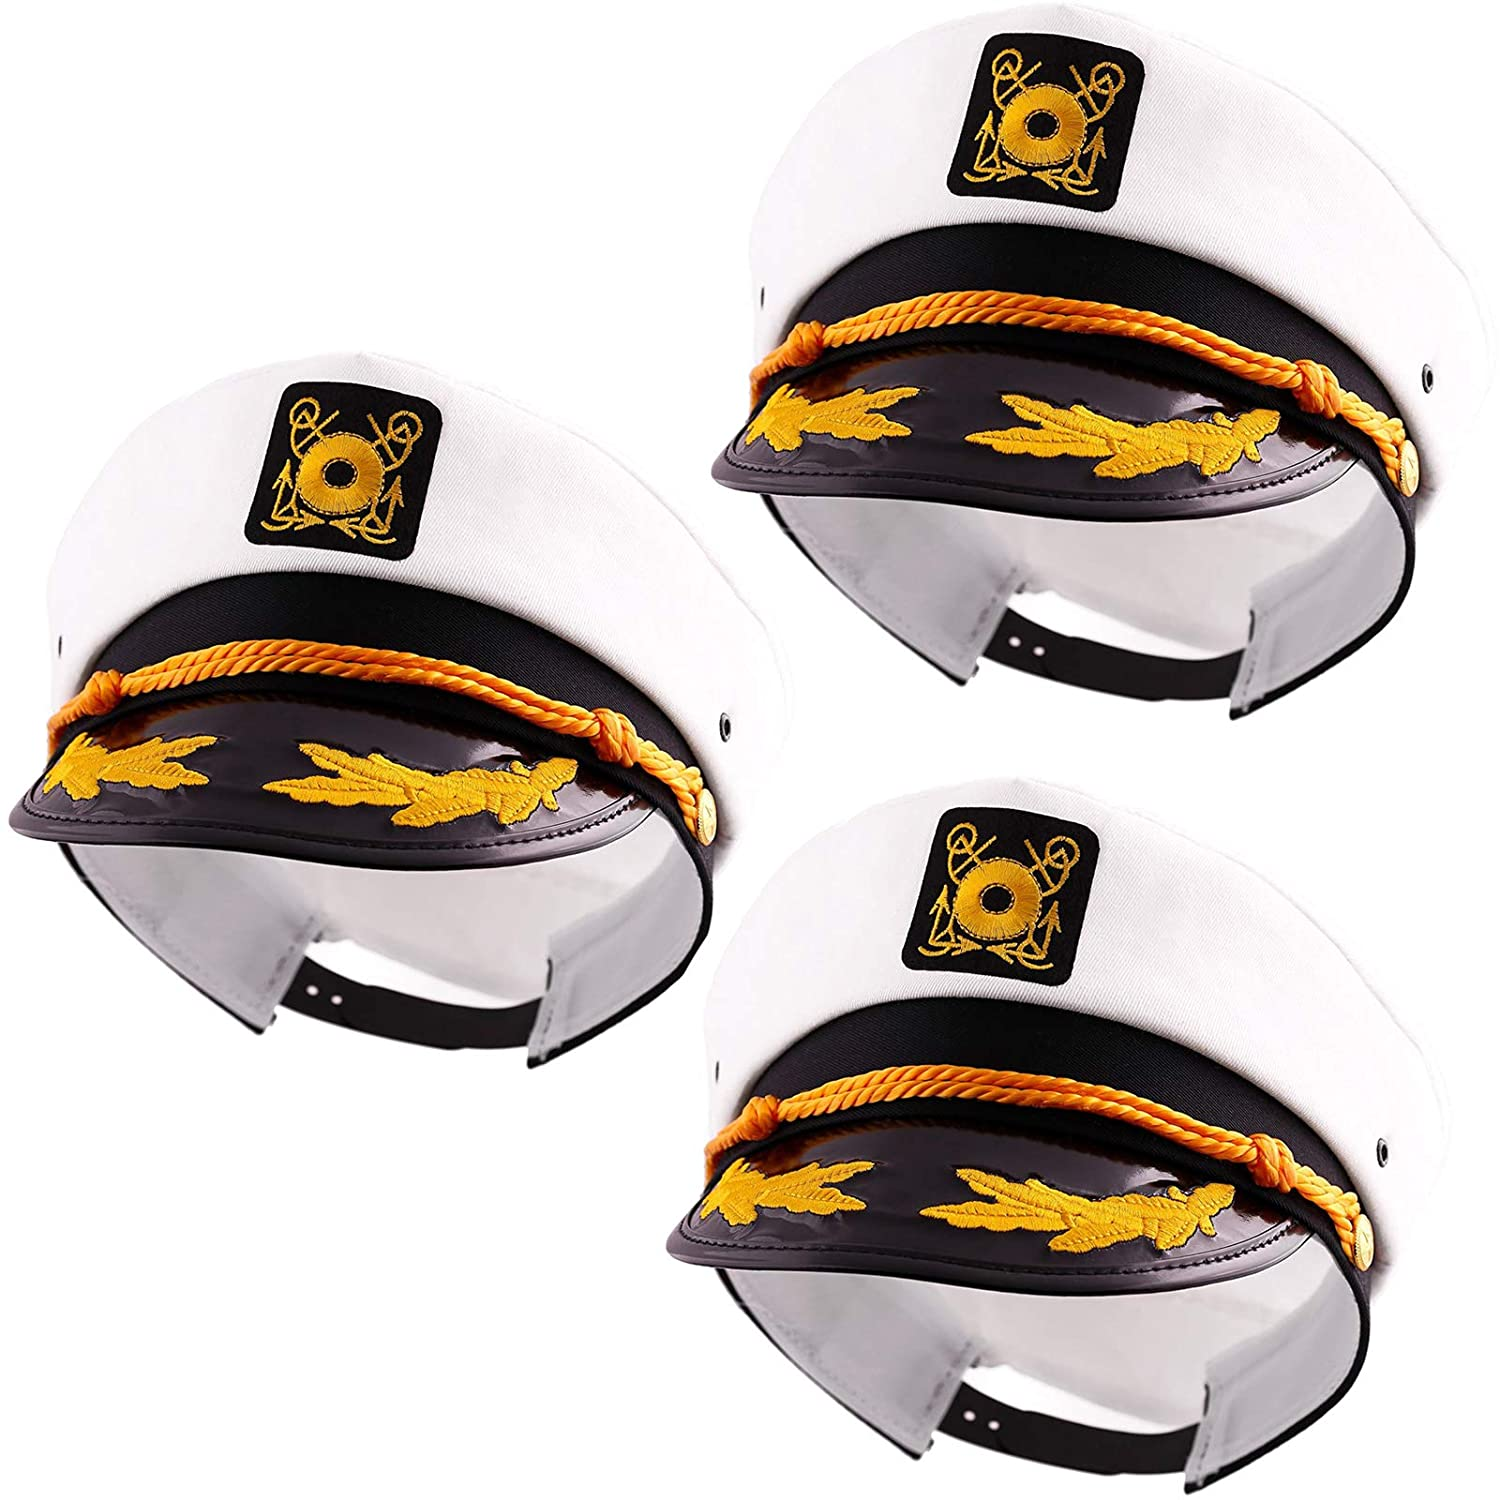 Captain's Yacht Sailors Hat Snapback Adjustable Sea Cap NAVY Costume Accessory (3 Pcs. Set)